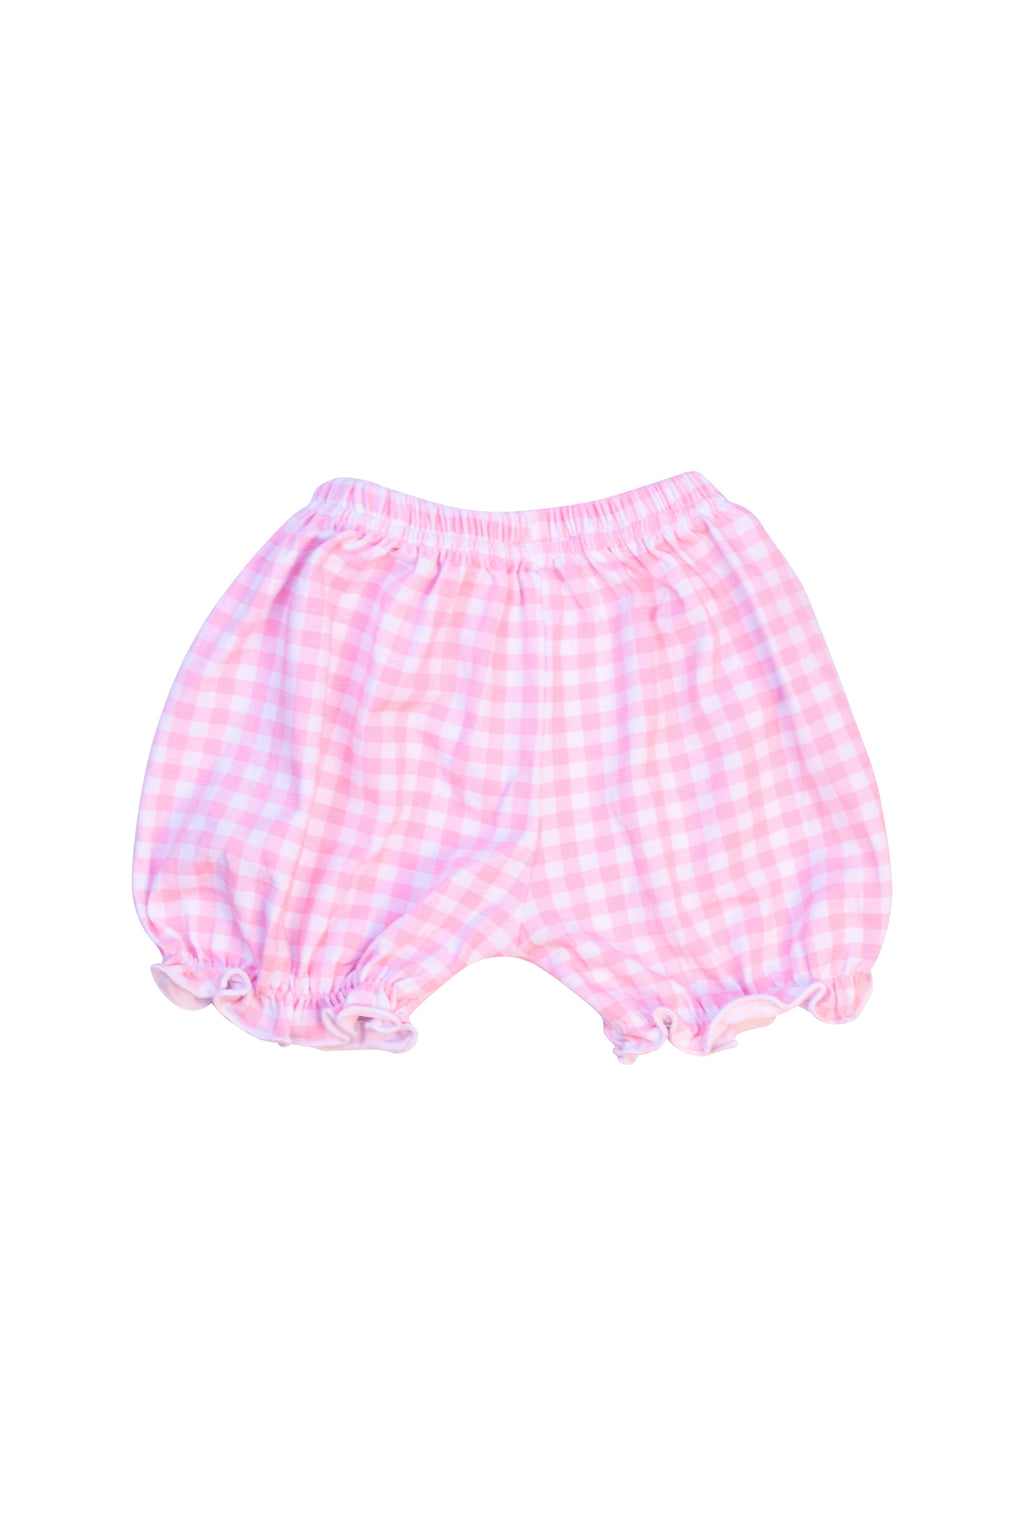 Girls Pink Check Knit Bloomers